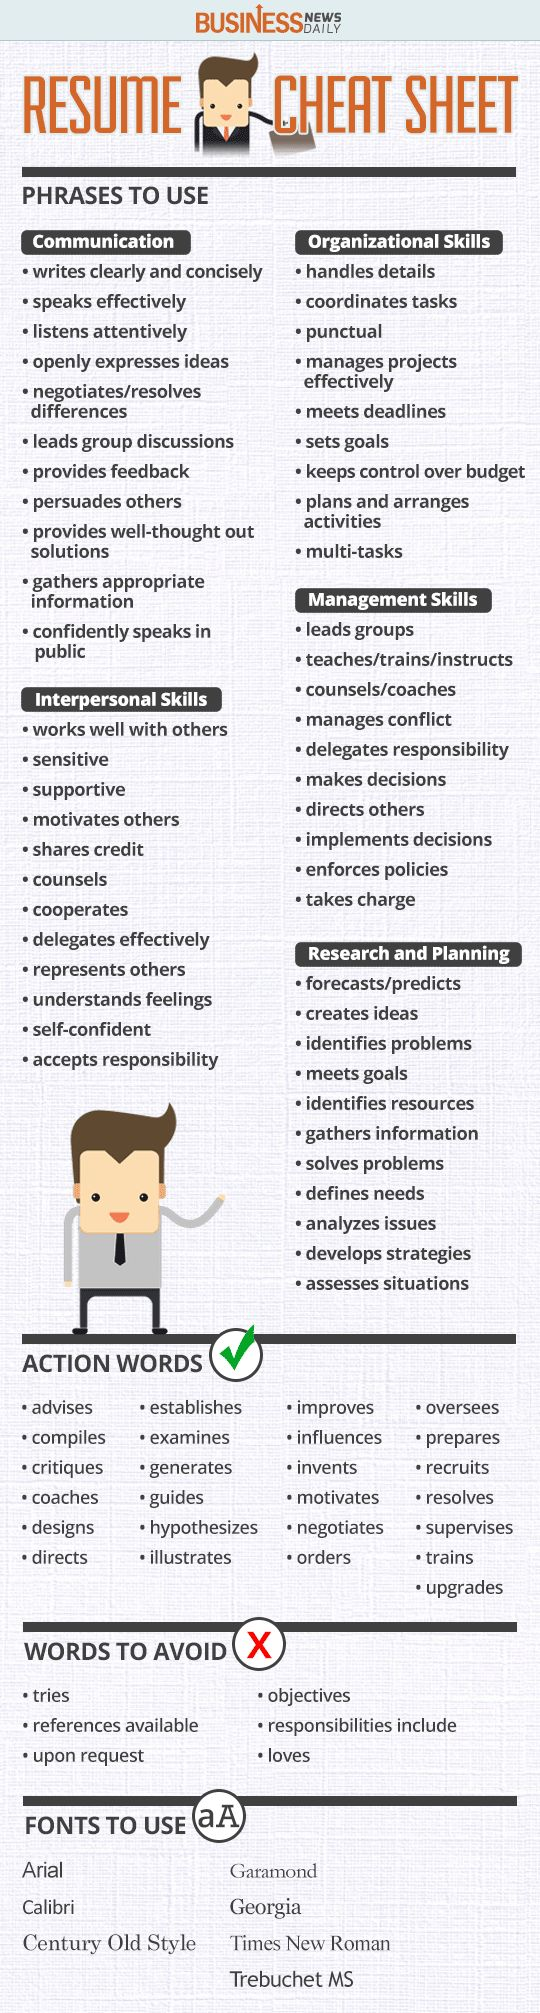 Opposenewapstandardsus  Ravishing  Ideas About Resume On Pinterest  Cv Format Resume  With Luxury Resume Cheat Sheet Infographic Andrews Almost Done With A Complete Unit On Employment Which With Extraordinary Resume For Sales Manager Also Market Research Analyst Resume In Addition Resume For Financial Analyst And How To Make Your Resume Look Good As Well As Public Accounting Resume Additionally Resume Skills Sample From Pinterestcom With Opposenewapstandardsus  Luxury  Ideas About Resume On Pinterest  Cv Format Resume  With Extraordinary Resume Cheat Sheet Infographic Andrews Almost Done With A Complete Unit On Employment Which And Ravishing Resume For Sales Manager Also Market Research Analyst Resume In Addition Resume For Financial Analyst From Pinterestcom